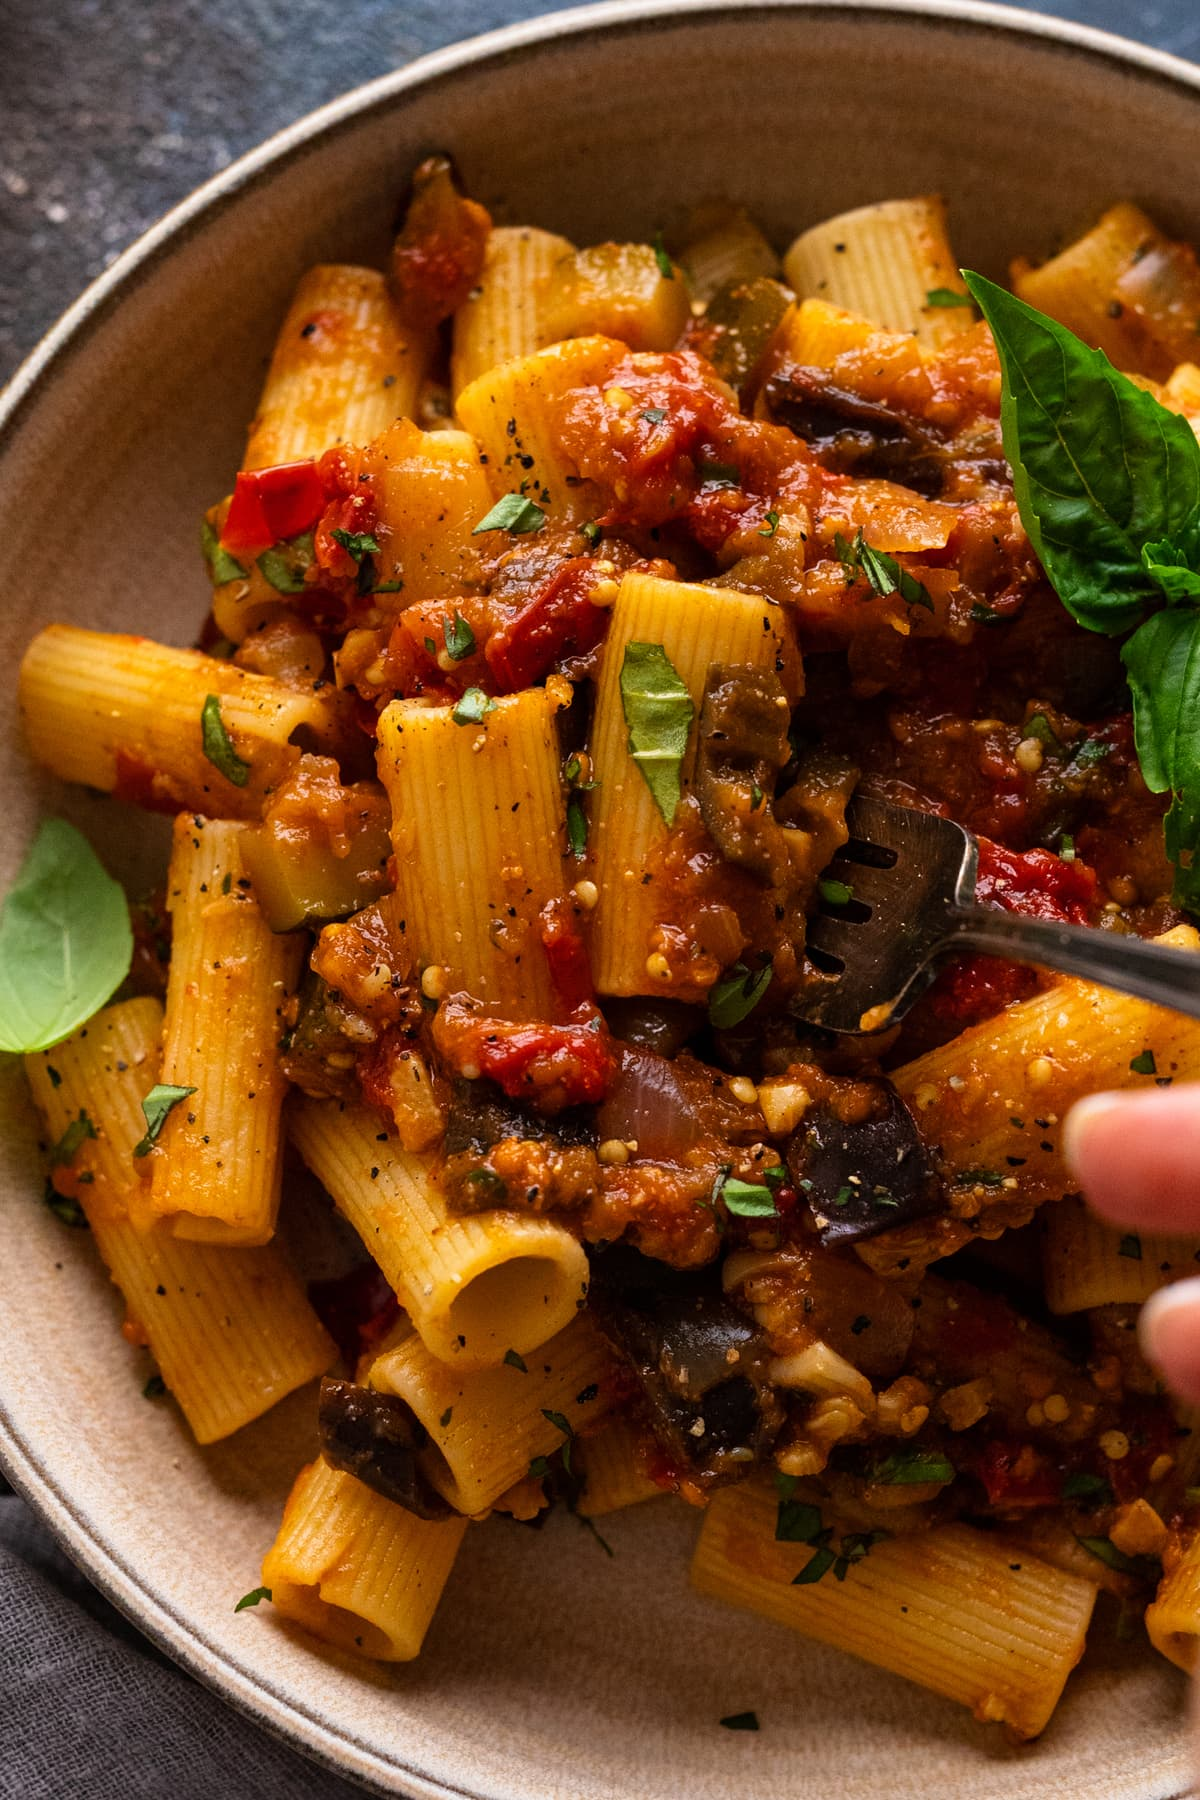 A close up of a fork in a bowl of eggplant ratatouille and pasta.